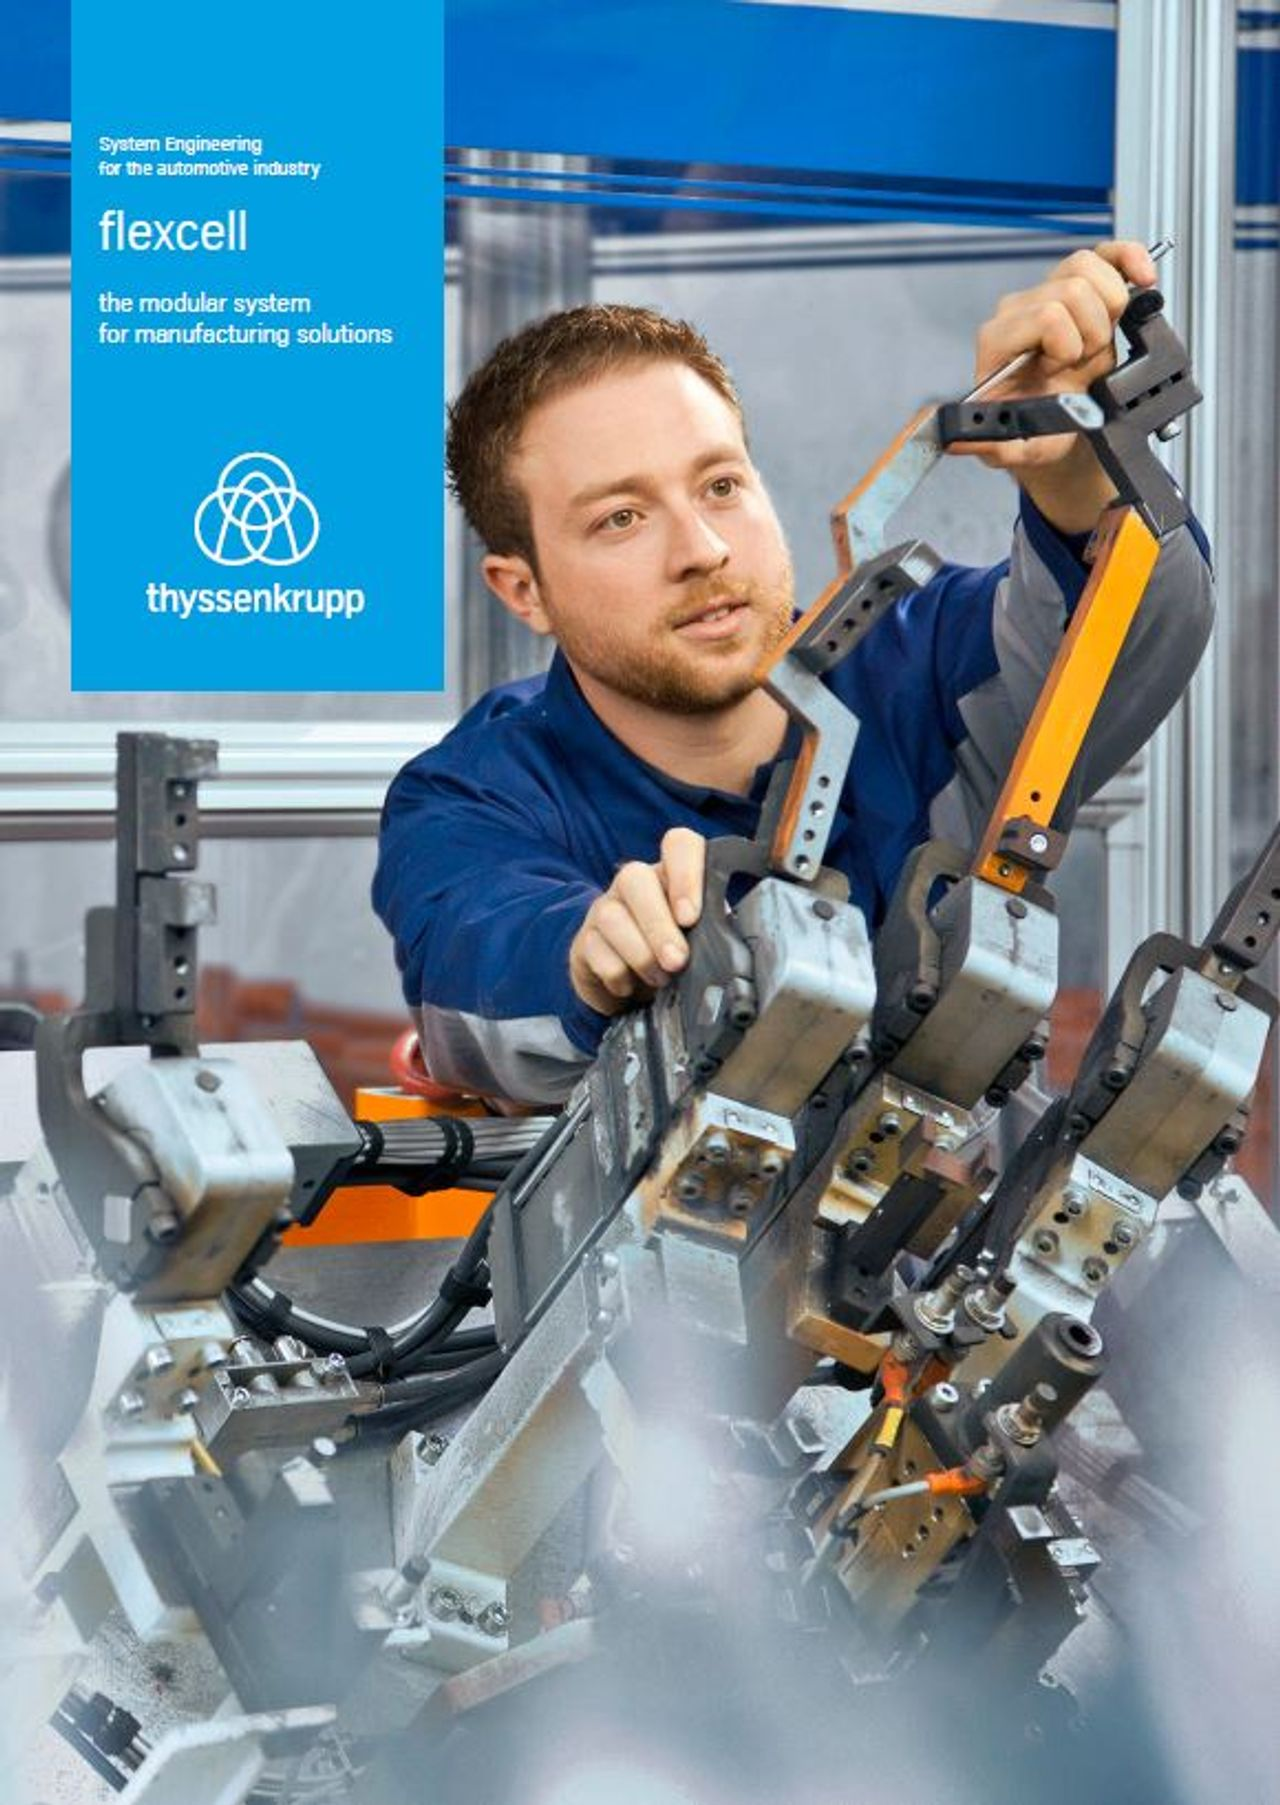 FlexCell - the modular system for manufacturing solutions